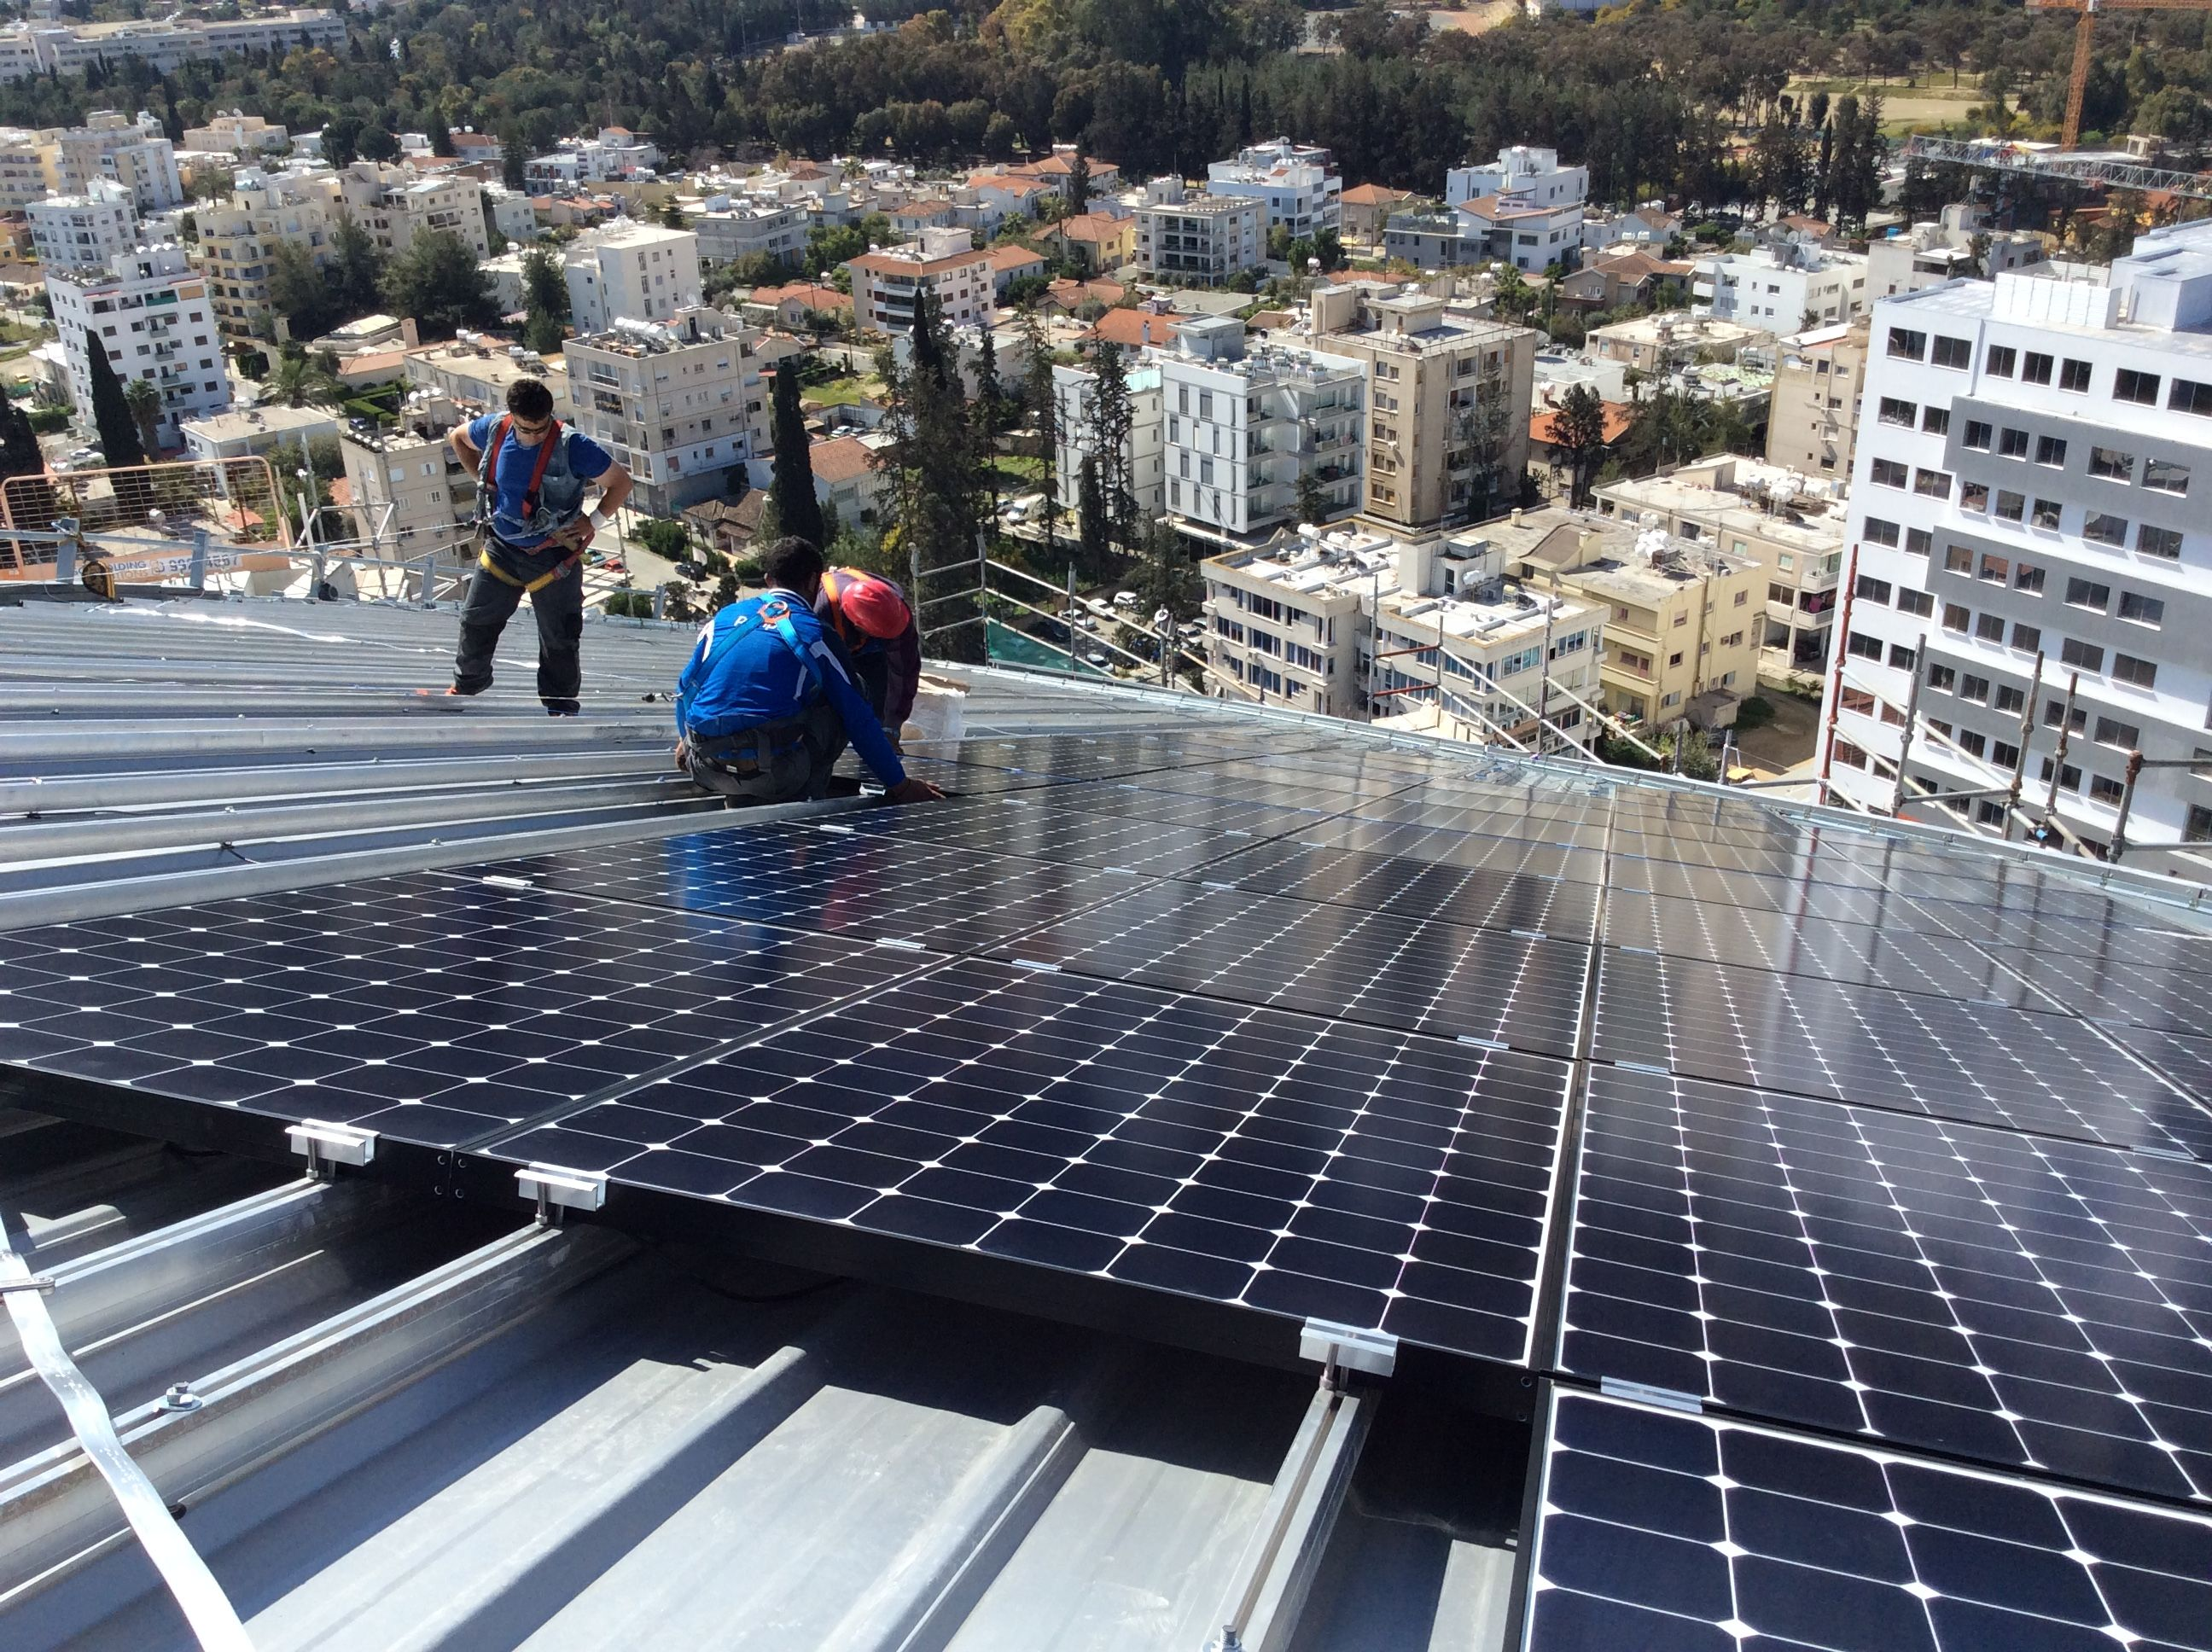 Pin By Zenonos Architects On Wargaming Global H Q Nicosia Cyprus Roof Solar Panel Outdoor Decor Solar Panels